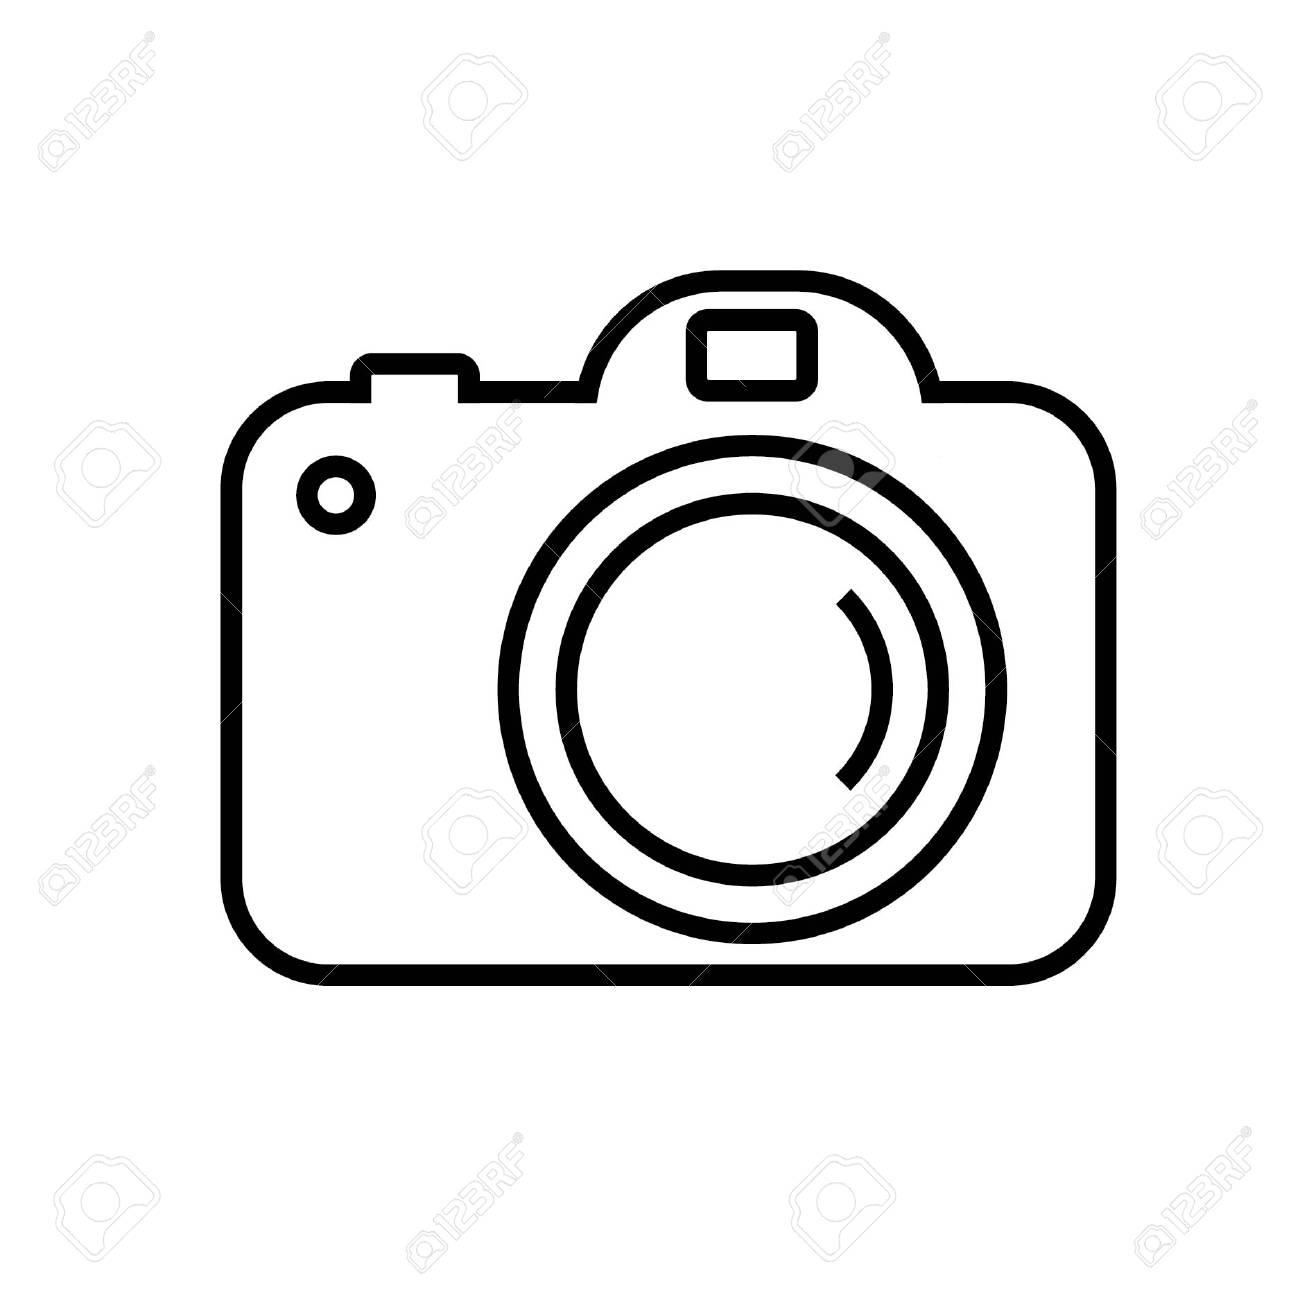 Digital Camera In Simple Line Vector Image Royalty Free Cliparts Vectors And Stock Illustration Image 87006611